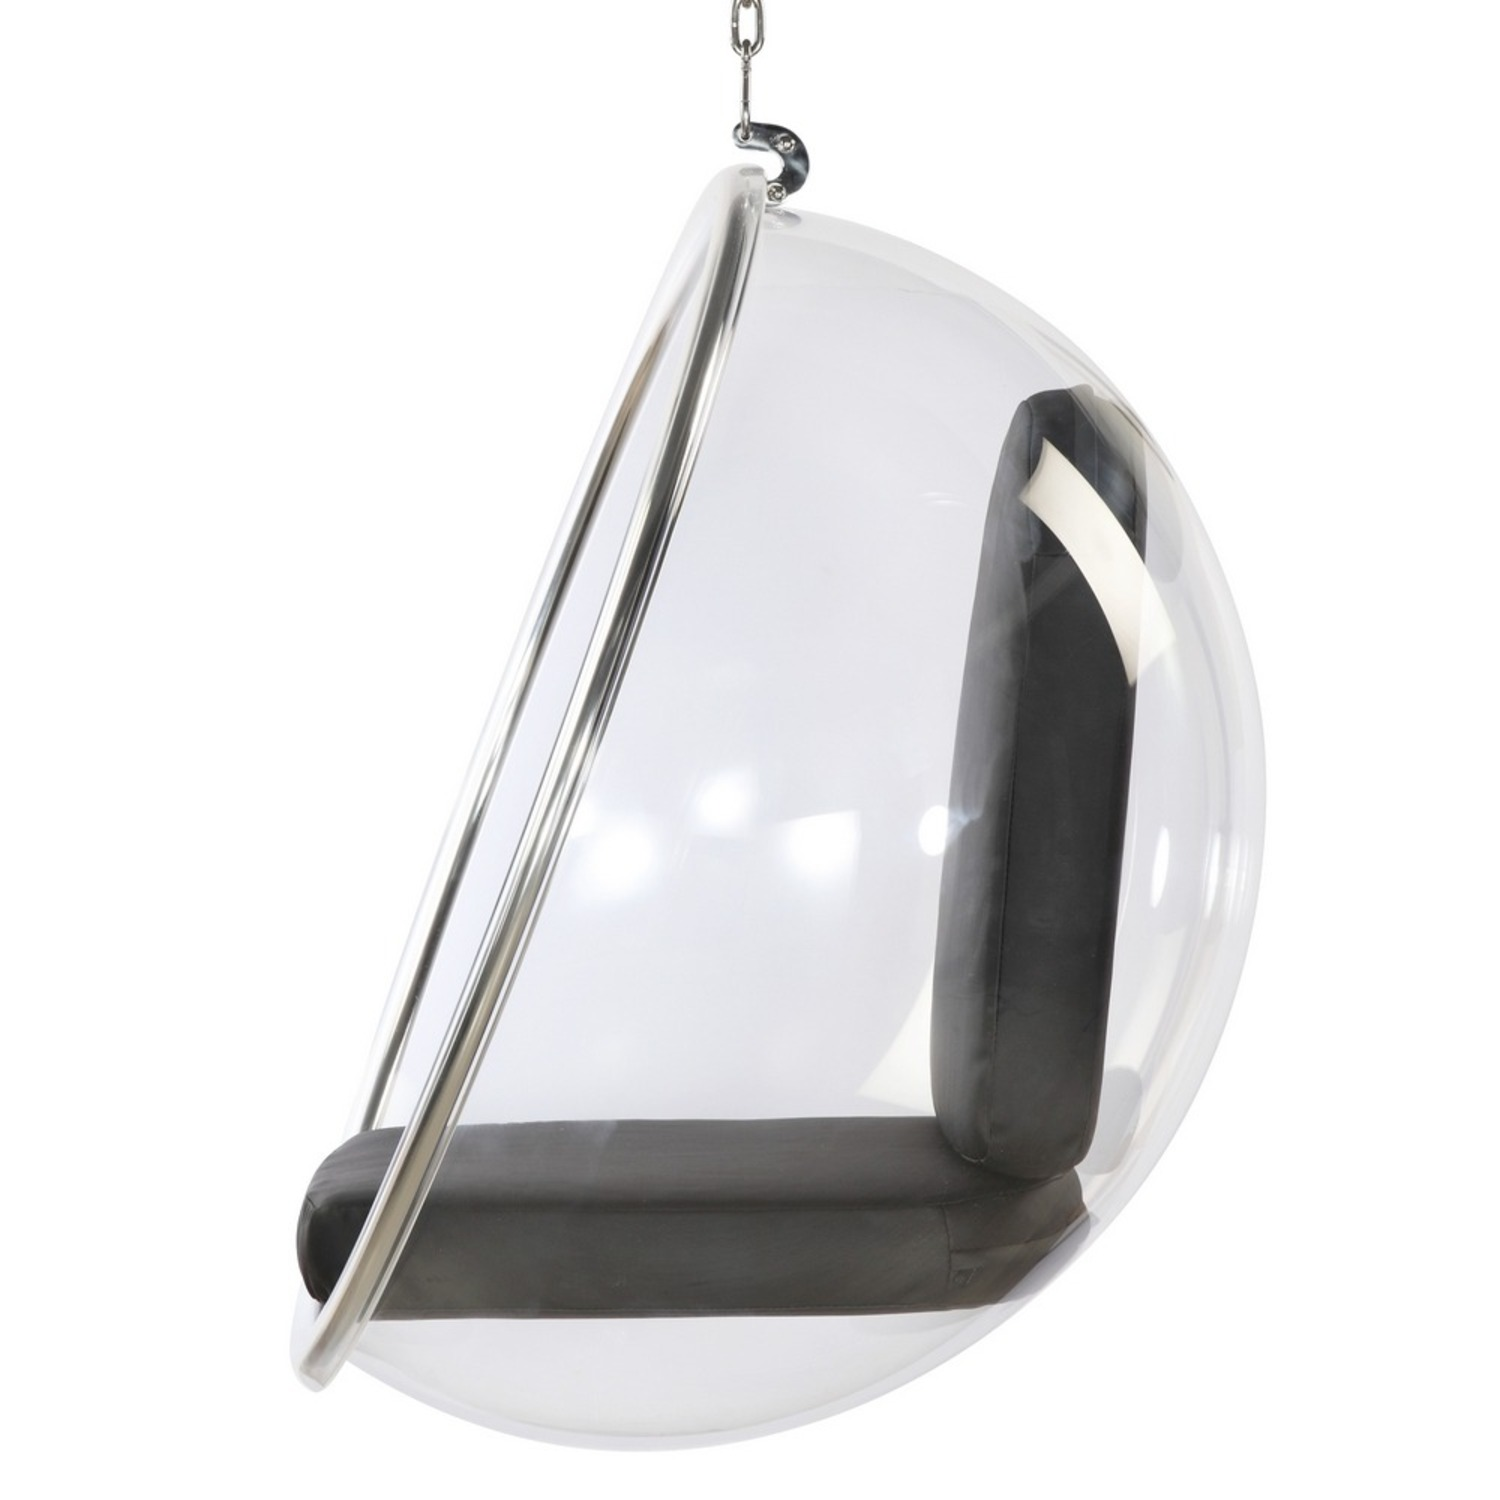 Hanging Chair In Clear Acrylic & Black PU Leather - image-3